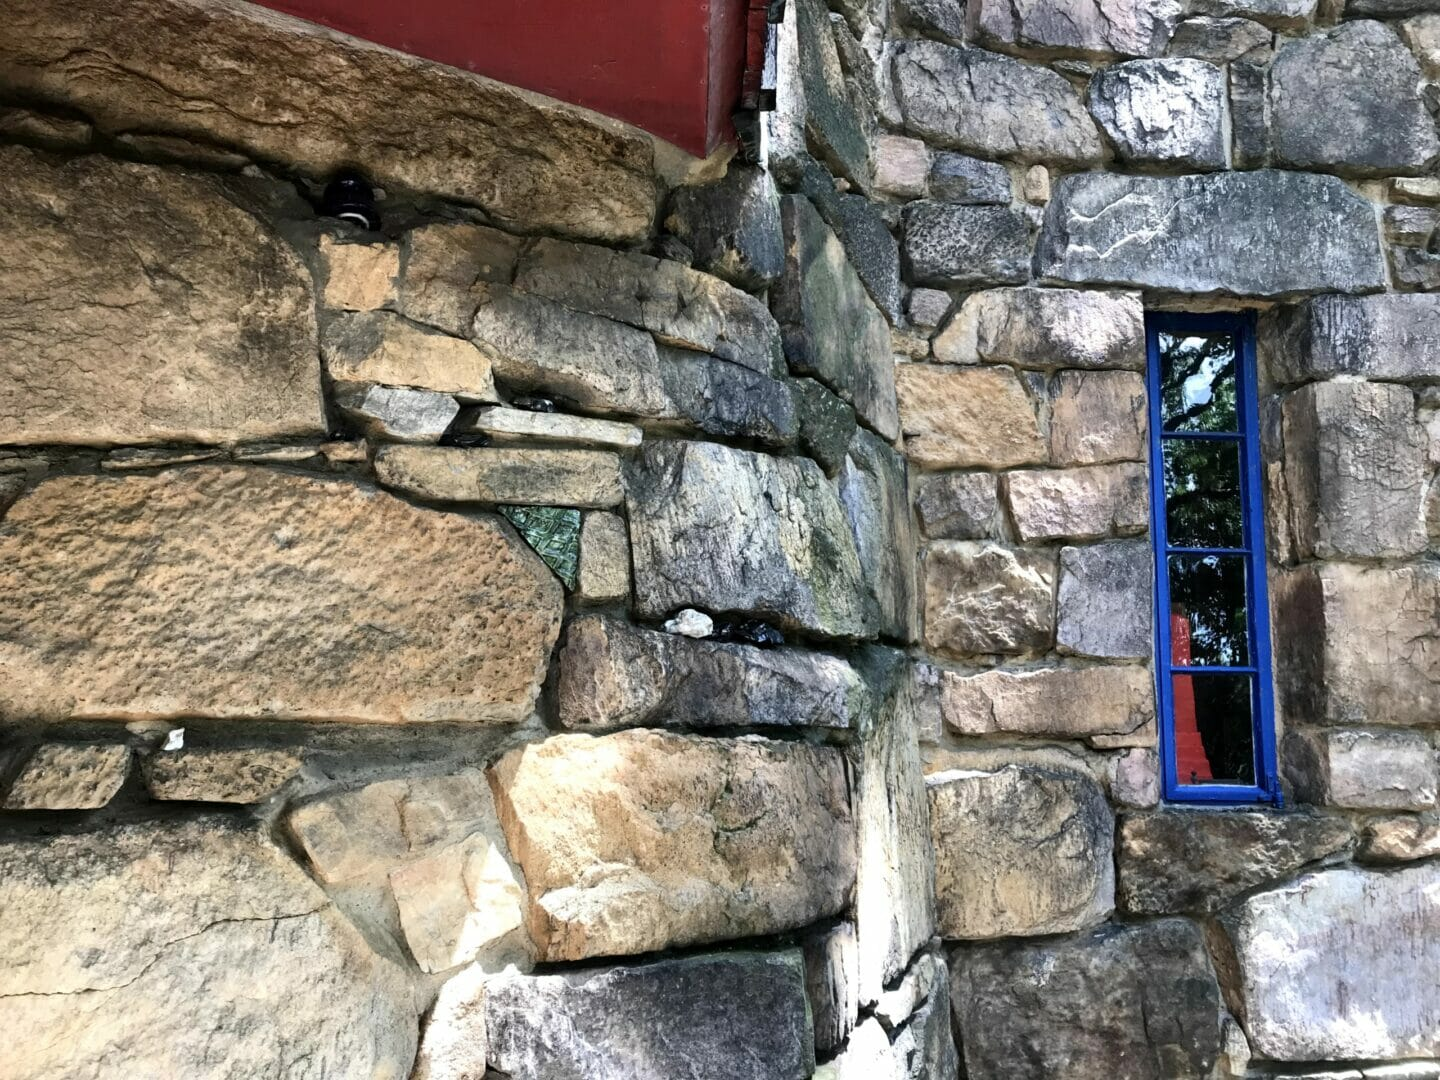 A stone wall with a tall narrow, blue window towards the right. In the window we can see a bright red abstract sculpture.